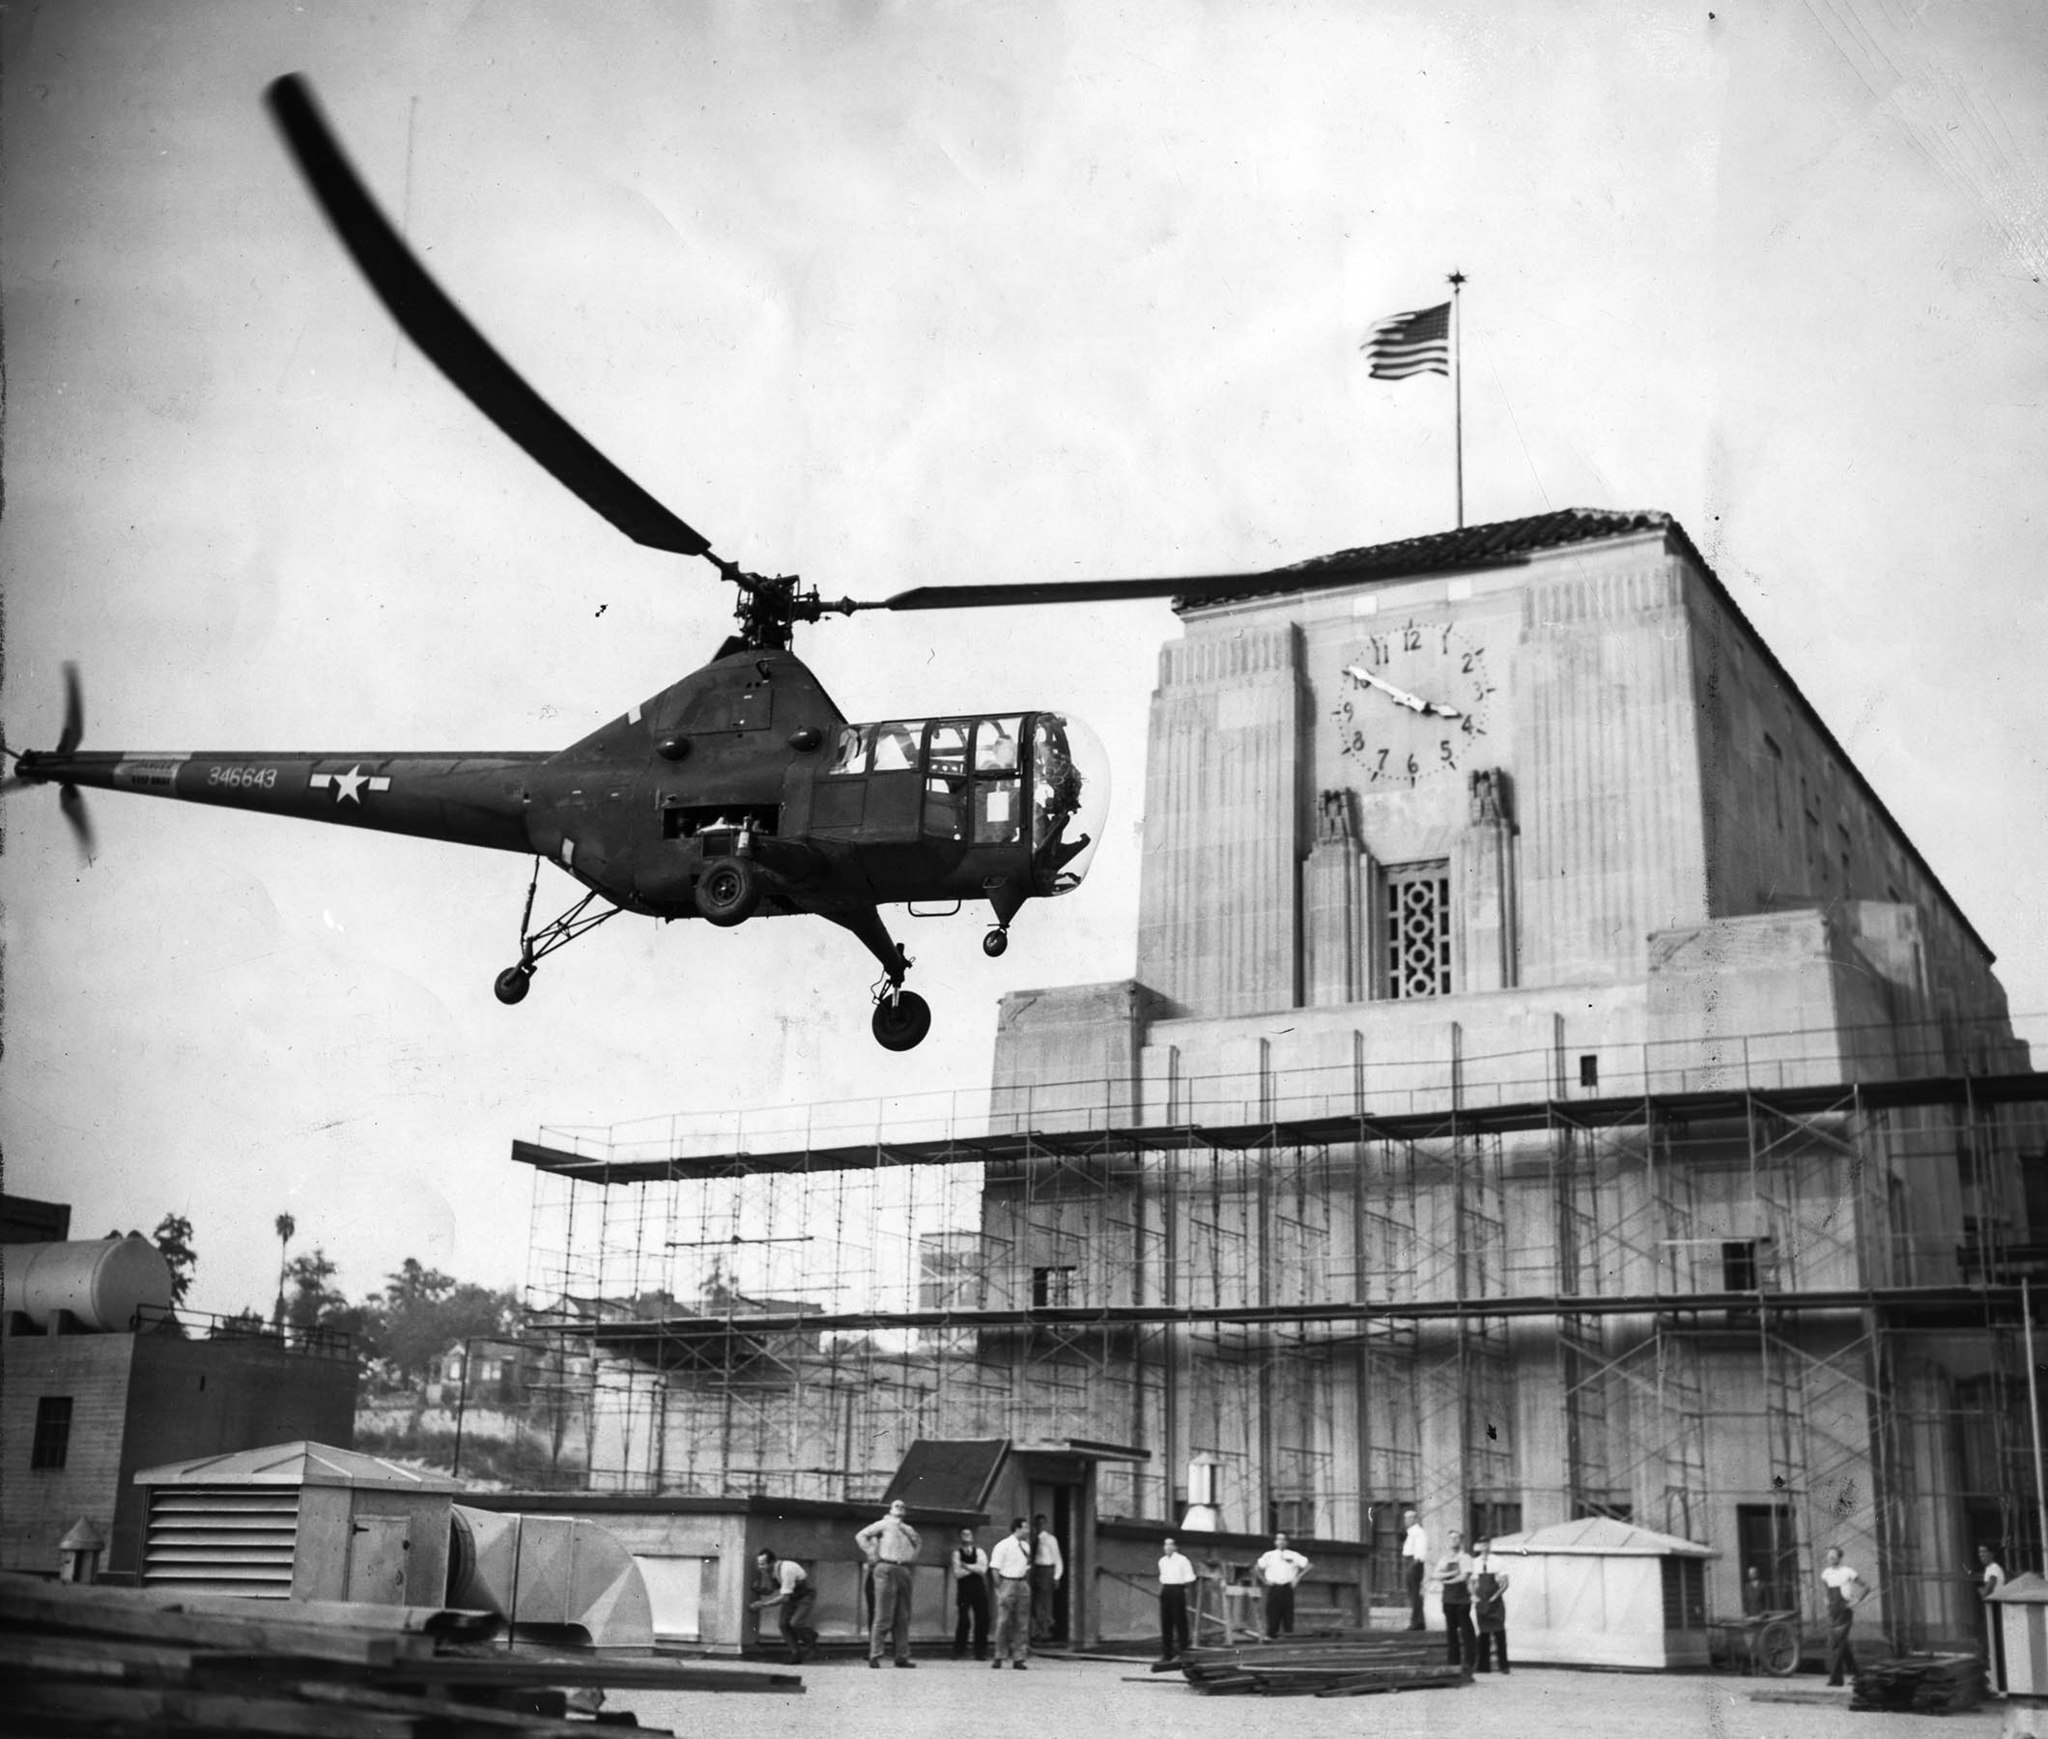 Oct. 26, 1946: Helicopter piloted by U.S Army Airforce pilot Lt. Edward H. Frost drops Coliseum foot